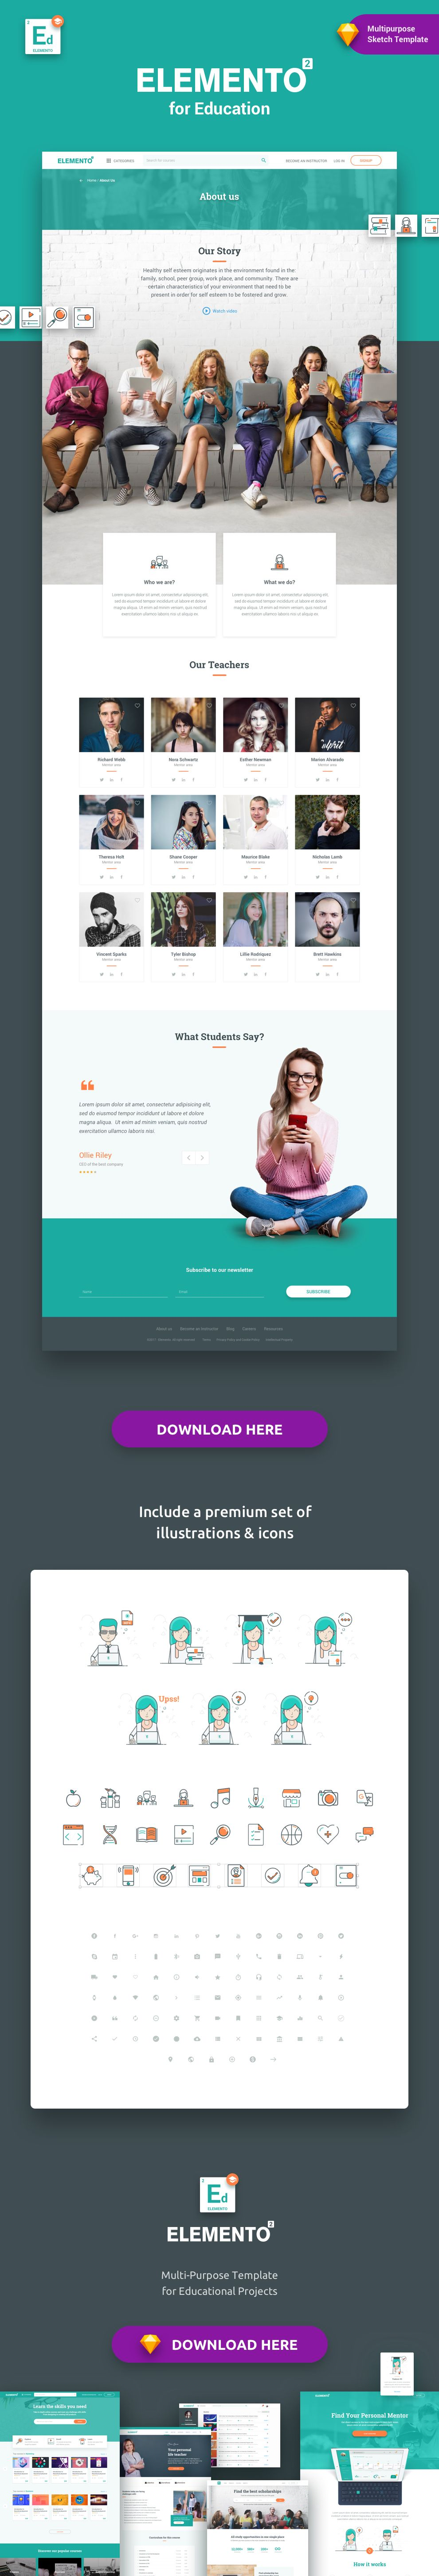 Elemento for Education Sketch Template Education, Web